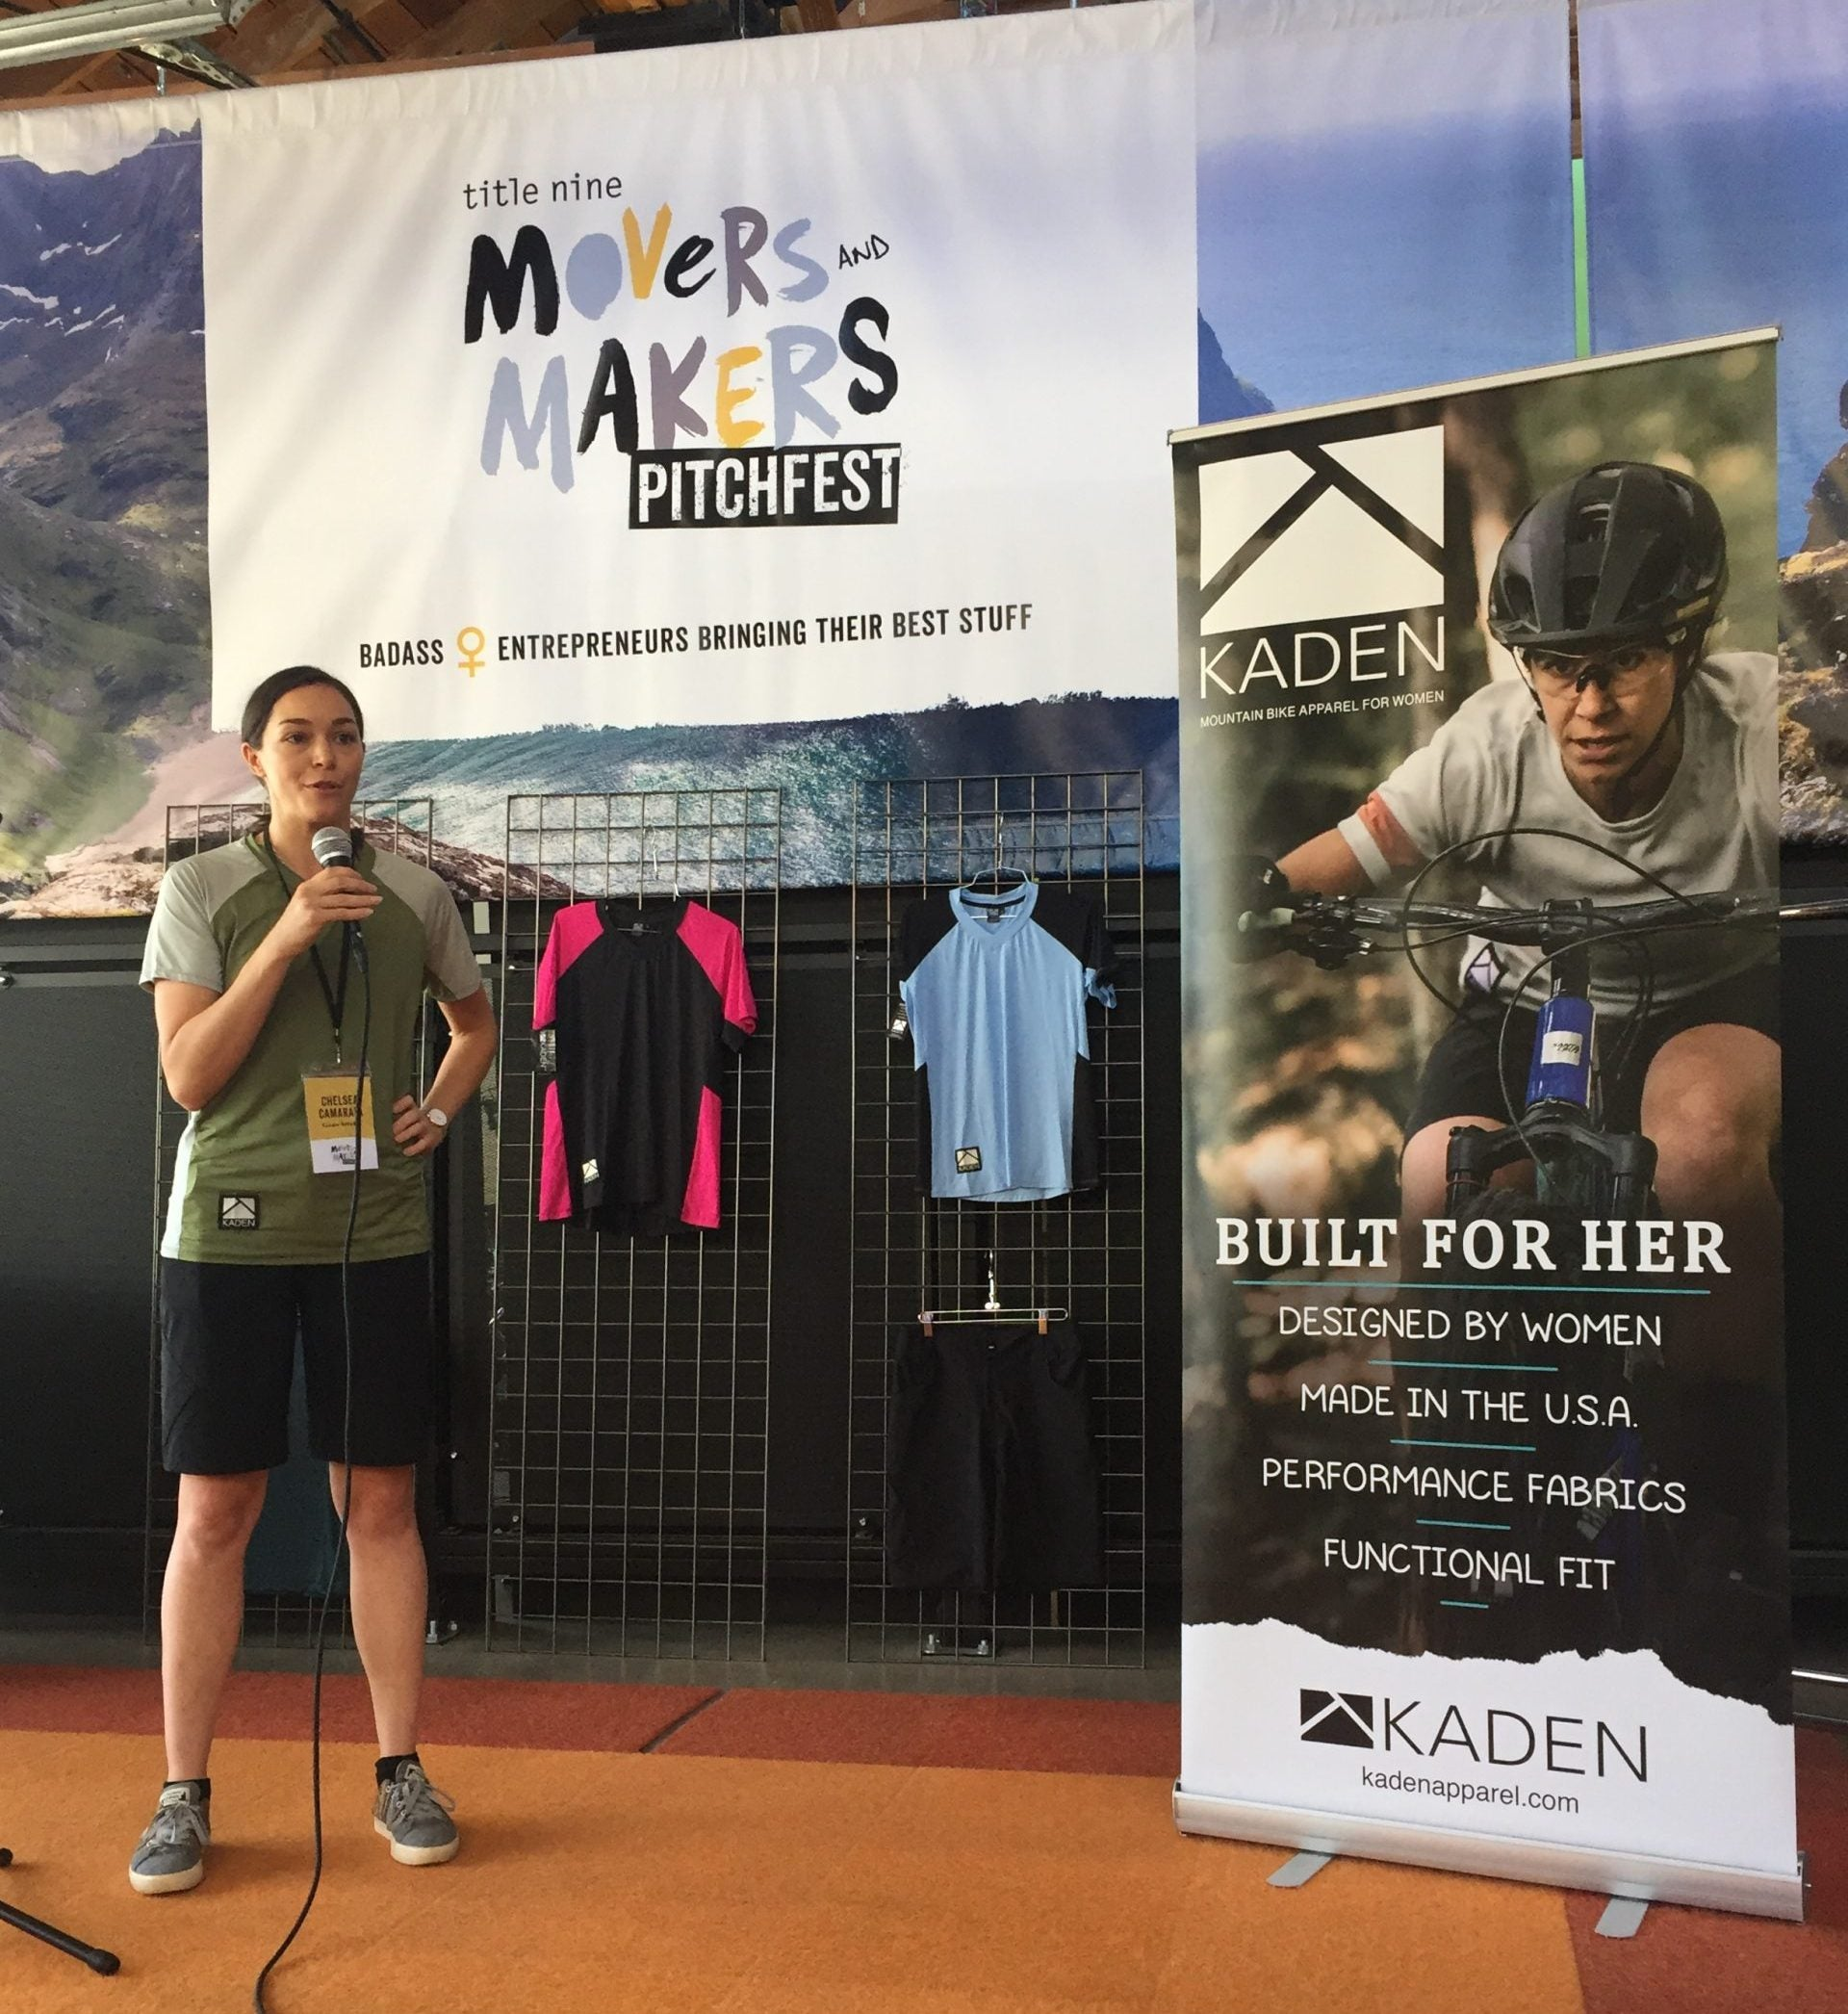 Kaden Selected as Title Nine 2019 Movers & Makers Pitchfest Finalist - Kaden Pitch Image